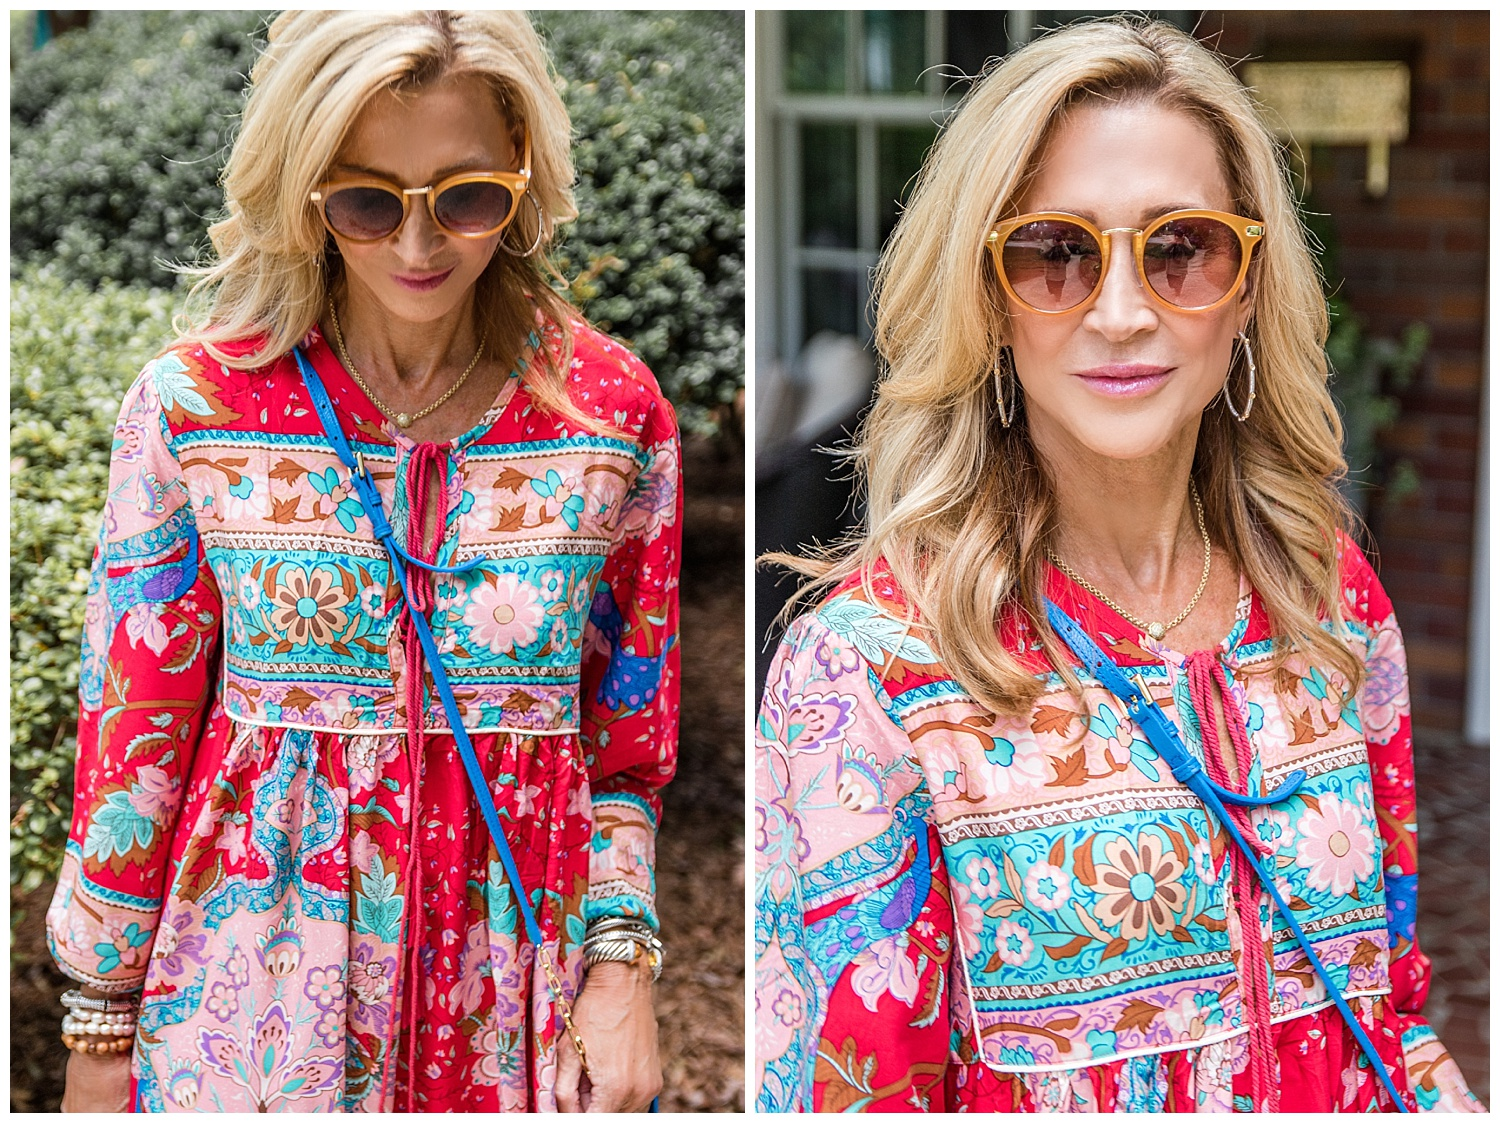 Amazon dress with Tory Burch sandals - Crazy Blonde Life